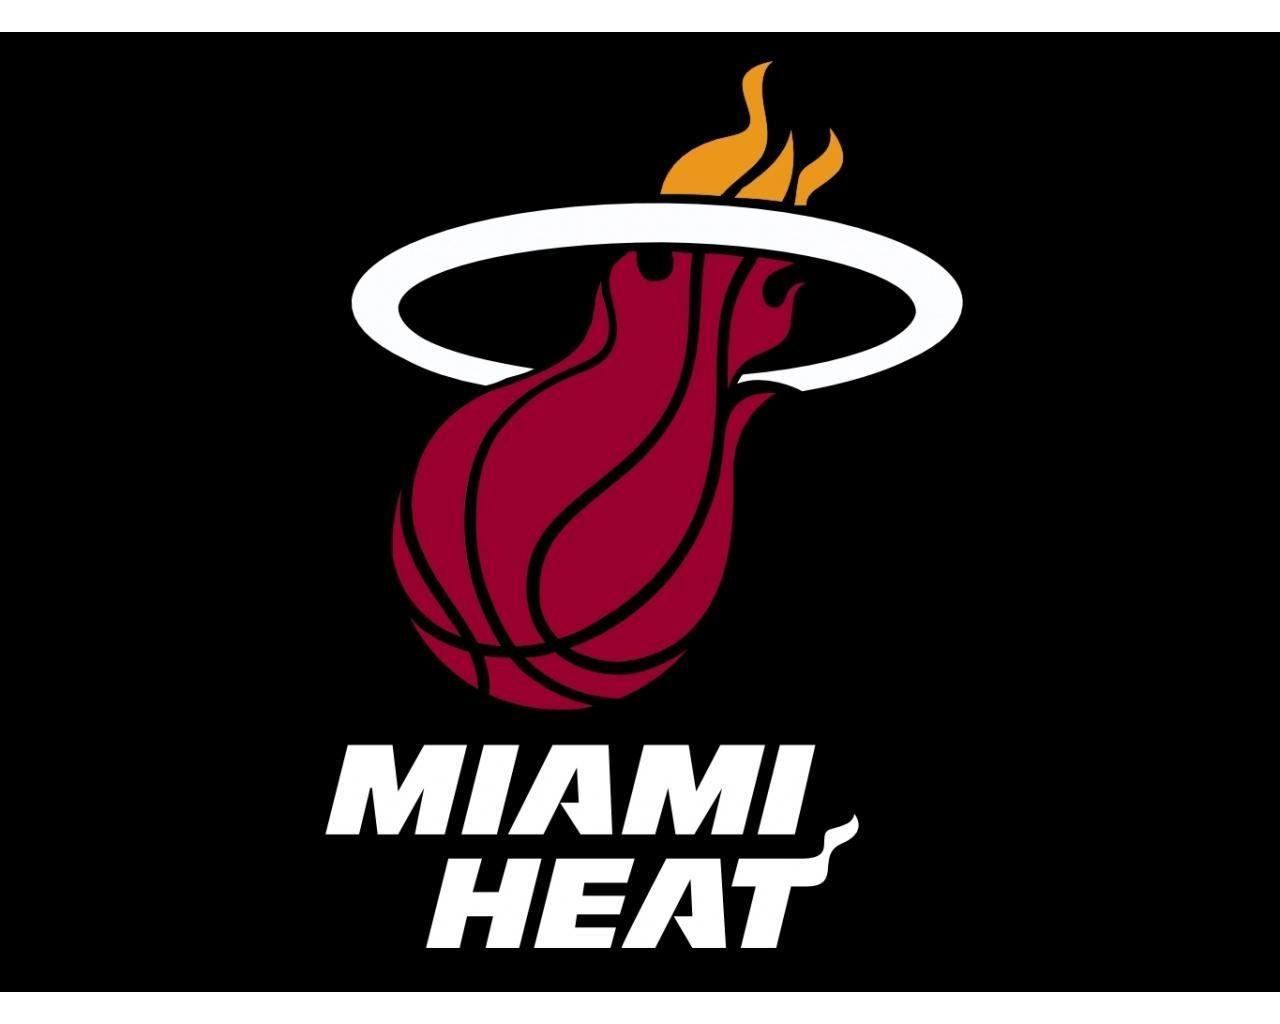 download Miami Heat Wallpapers HD 2016 [1280x1024] for your 1280x1024